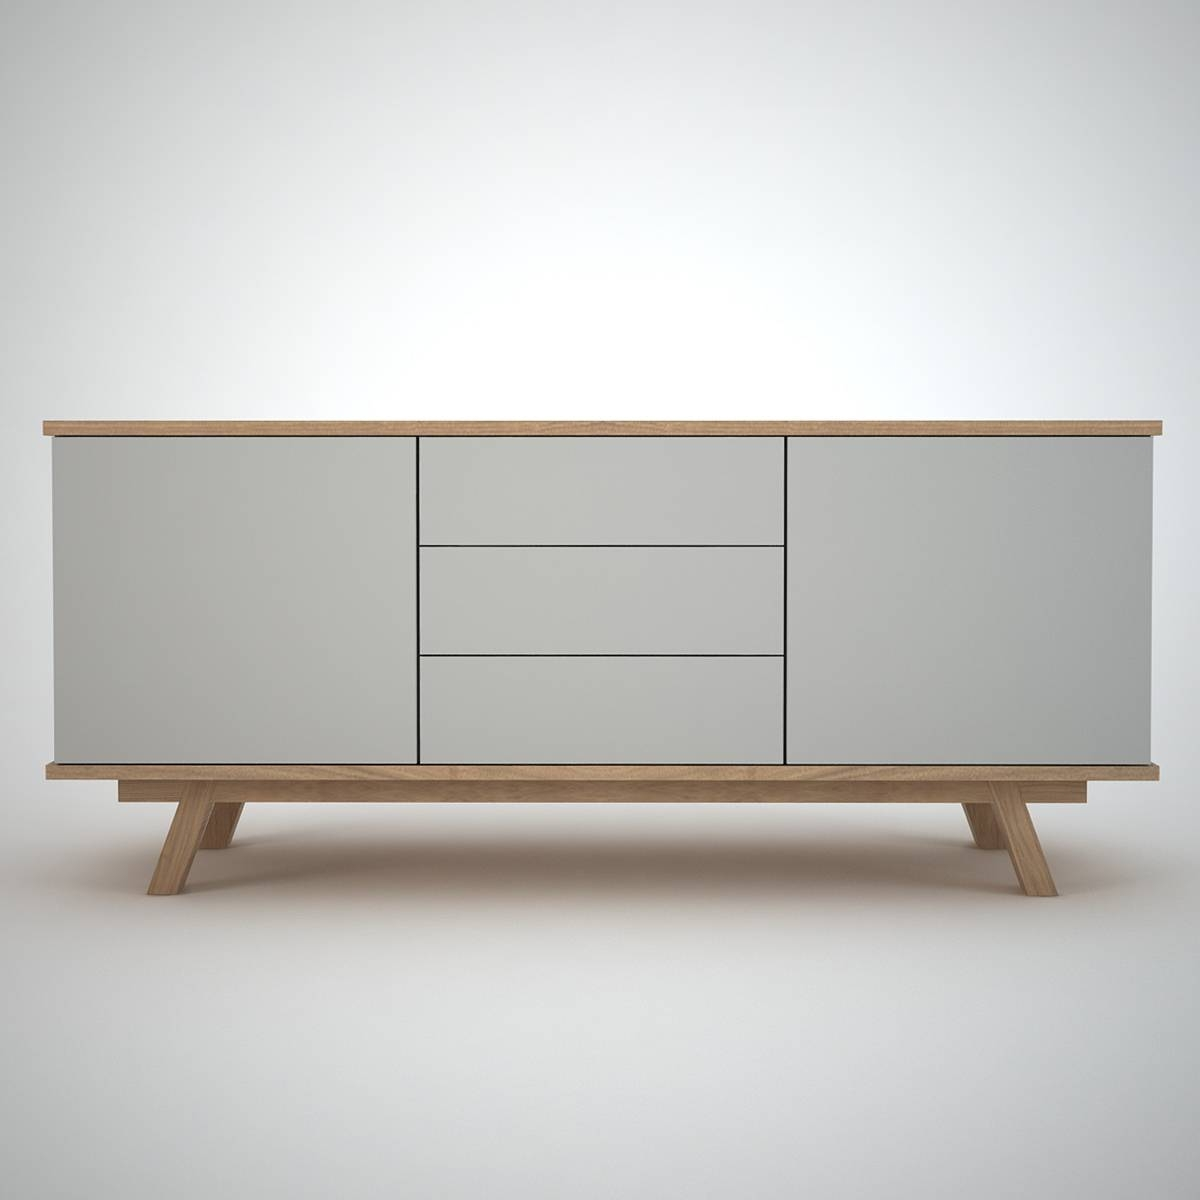 Ottawa Sideboard (2+3) Clay - Join Furniture intended for Contemporary White Sideboards (Image 14 of 30)